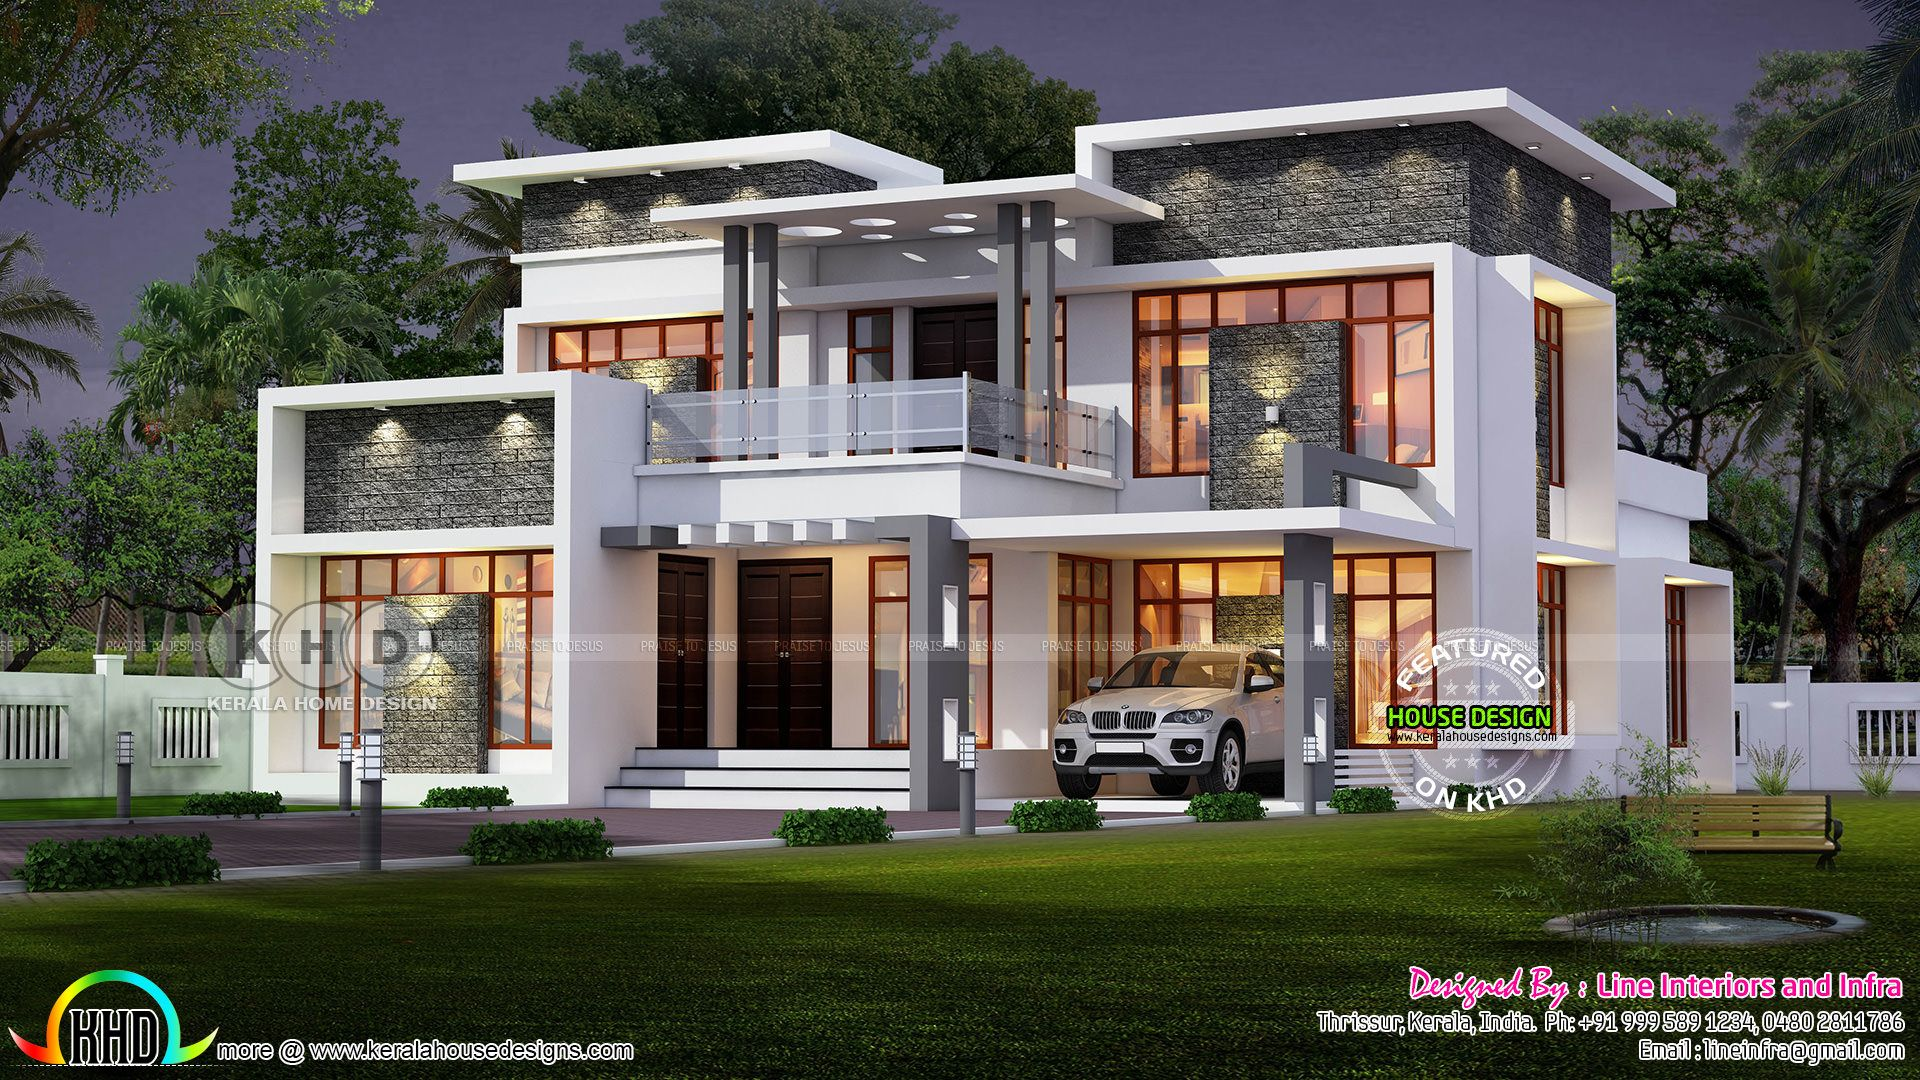 Modern Contemporary Home 2620 Sq Ft Kerala House Design Modern Contemporary Homes Bungalow House Design